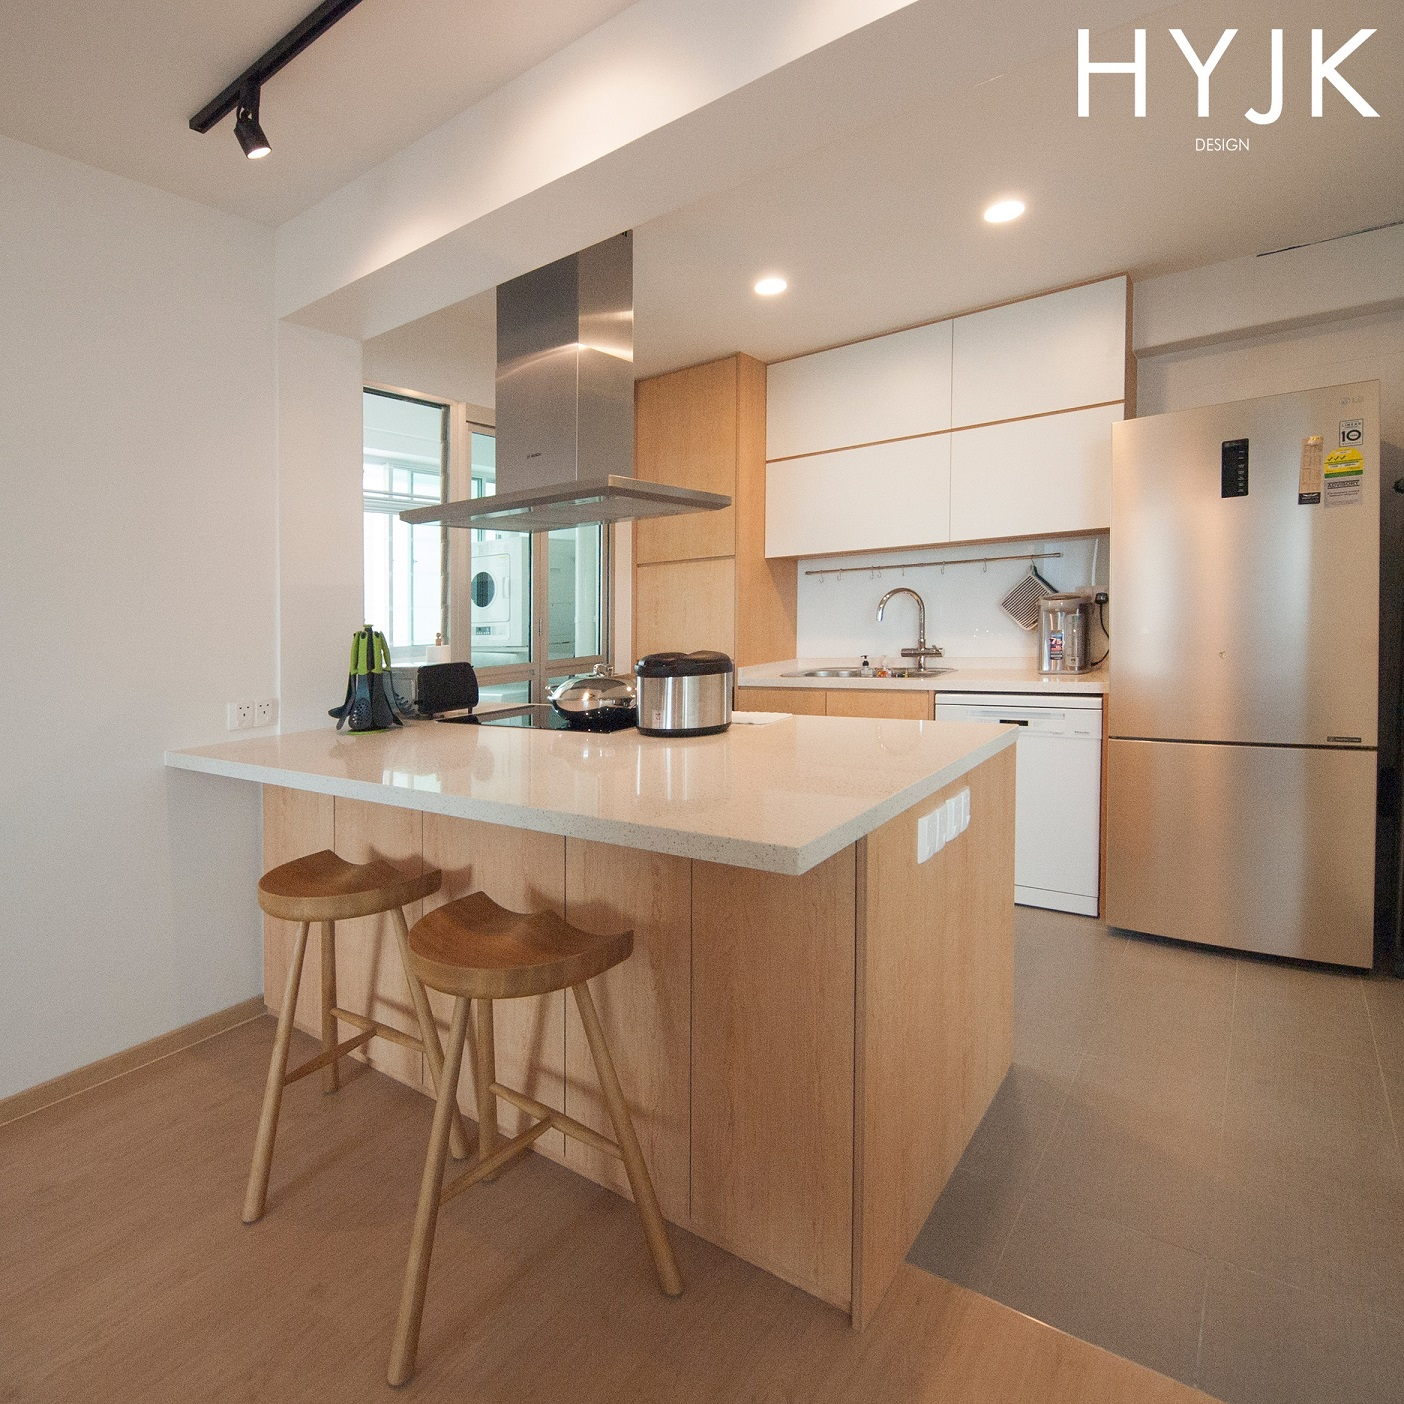 This modern open kitchen allows free interaction between your guests and you! (Project Repository)